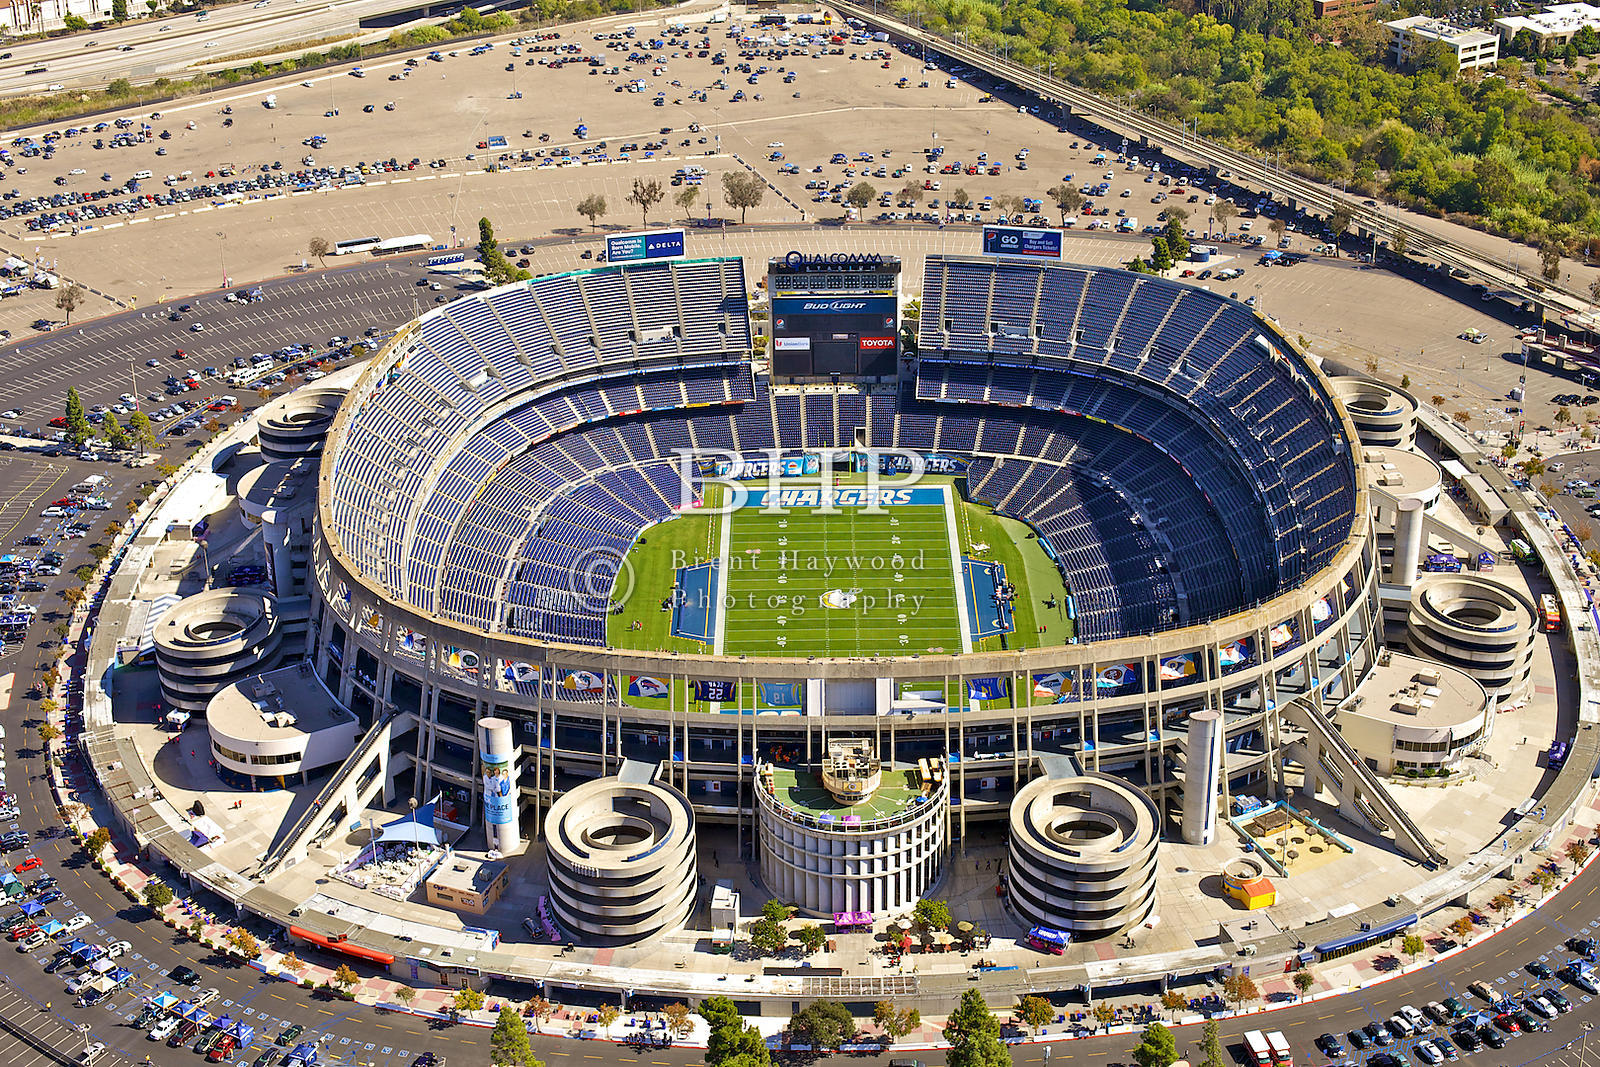 Brent Haywood Photography Qualcomm Stadium Aerial Photo